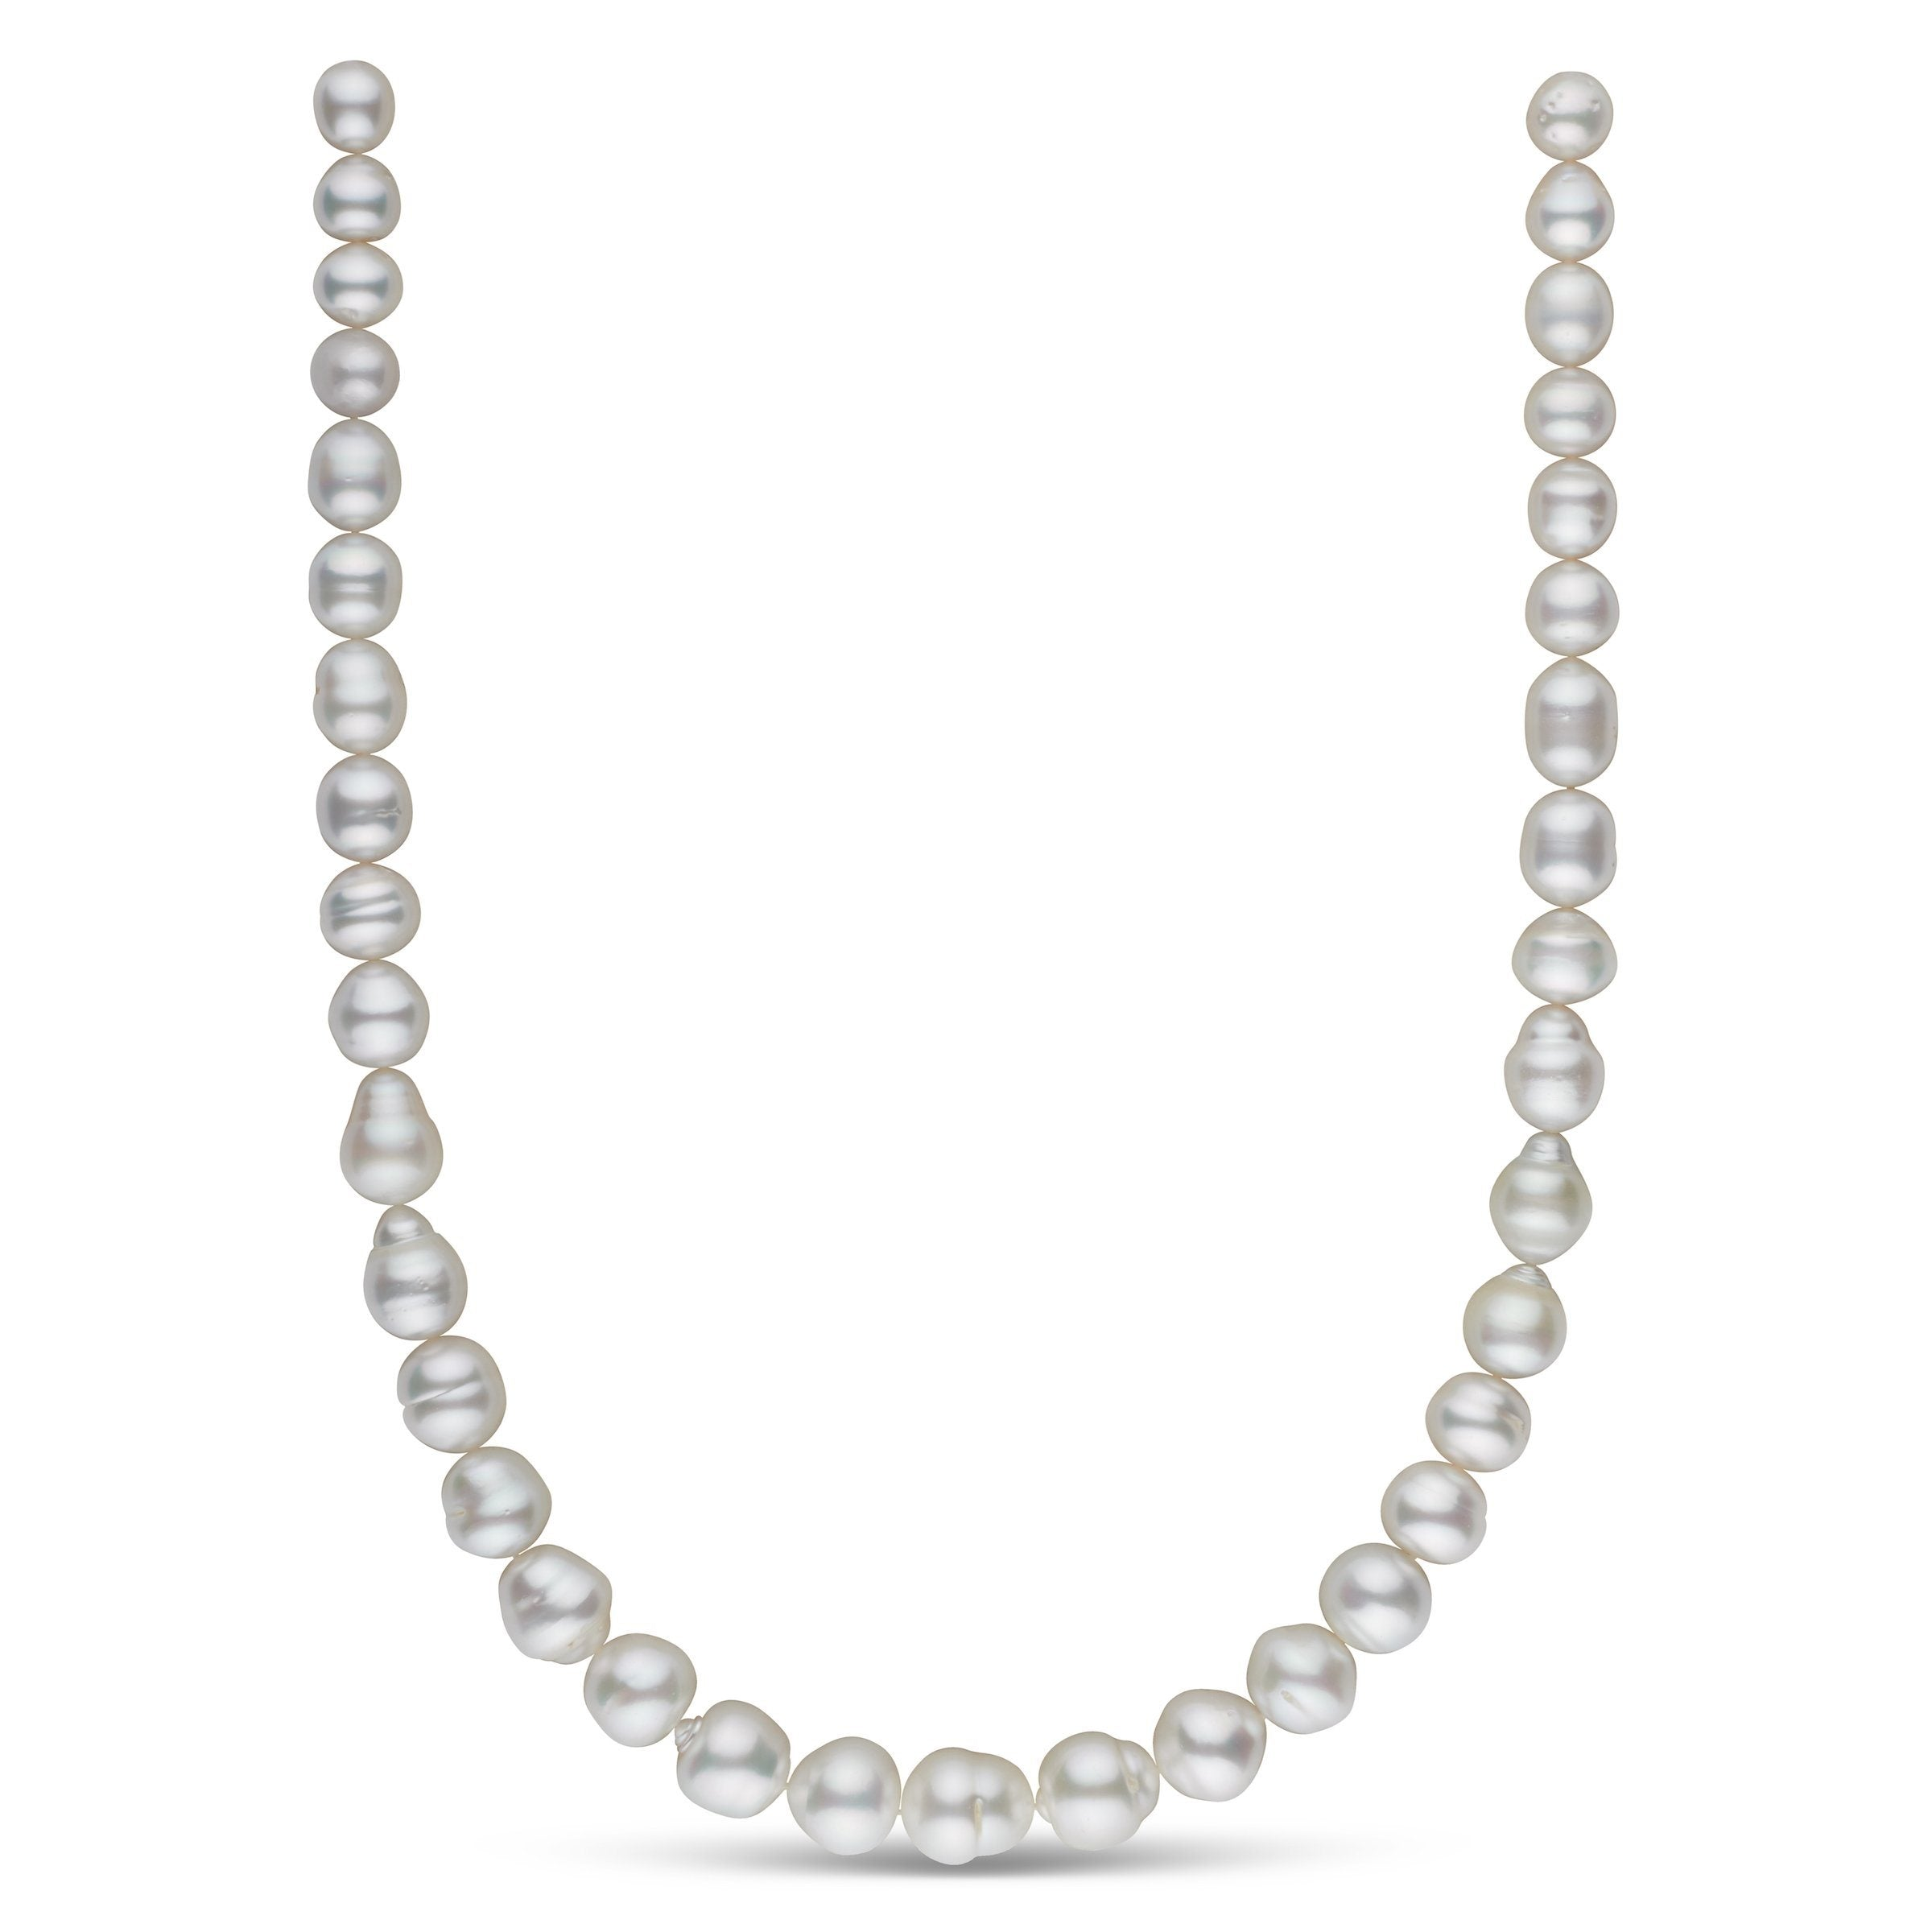 8.2-11.9 mm AA+/AAA White South Sea Baroque Necklace